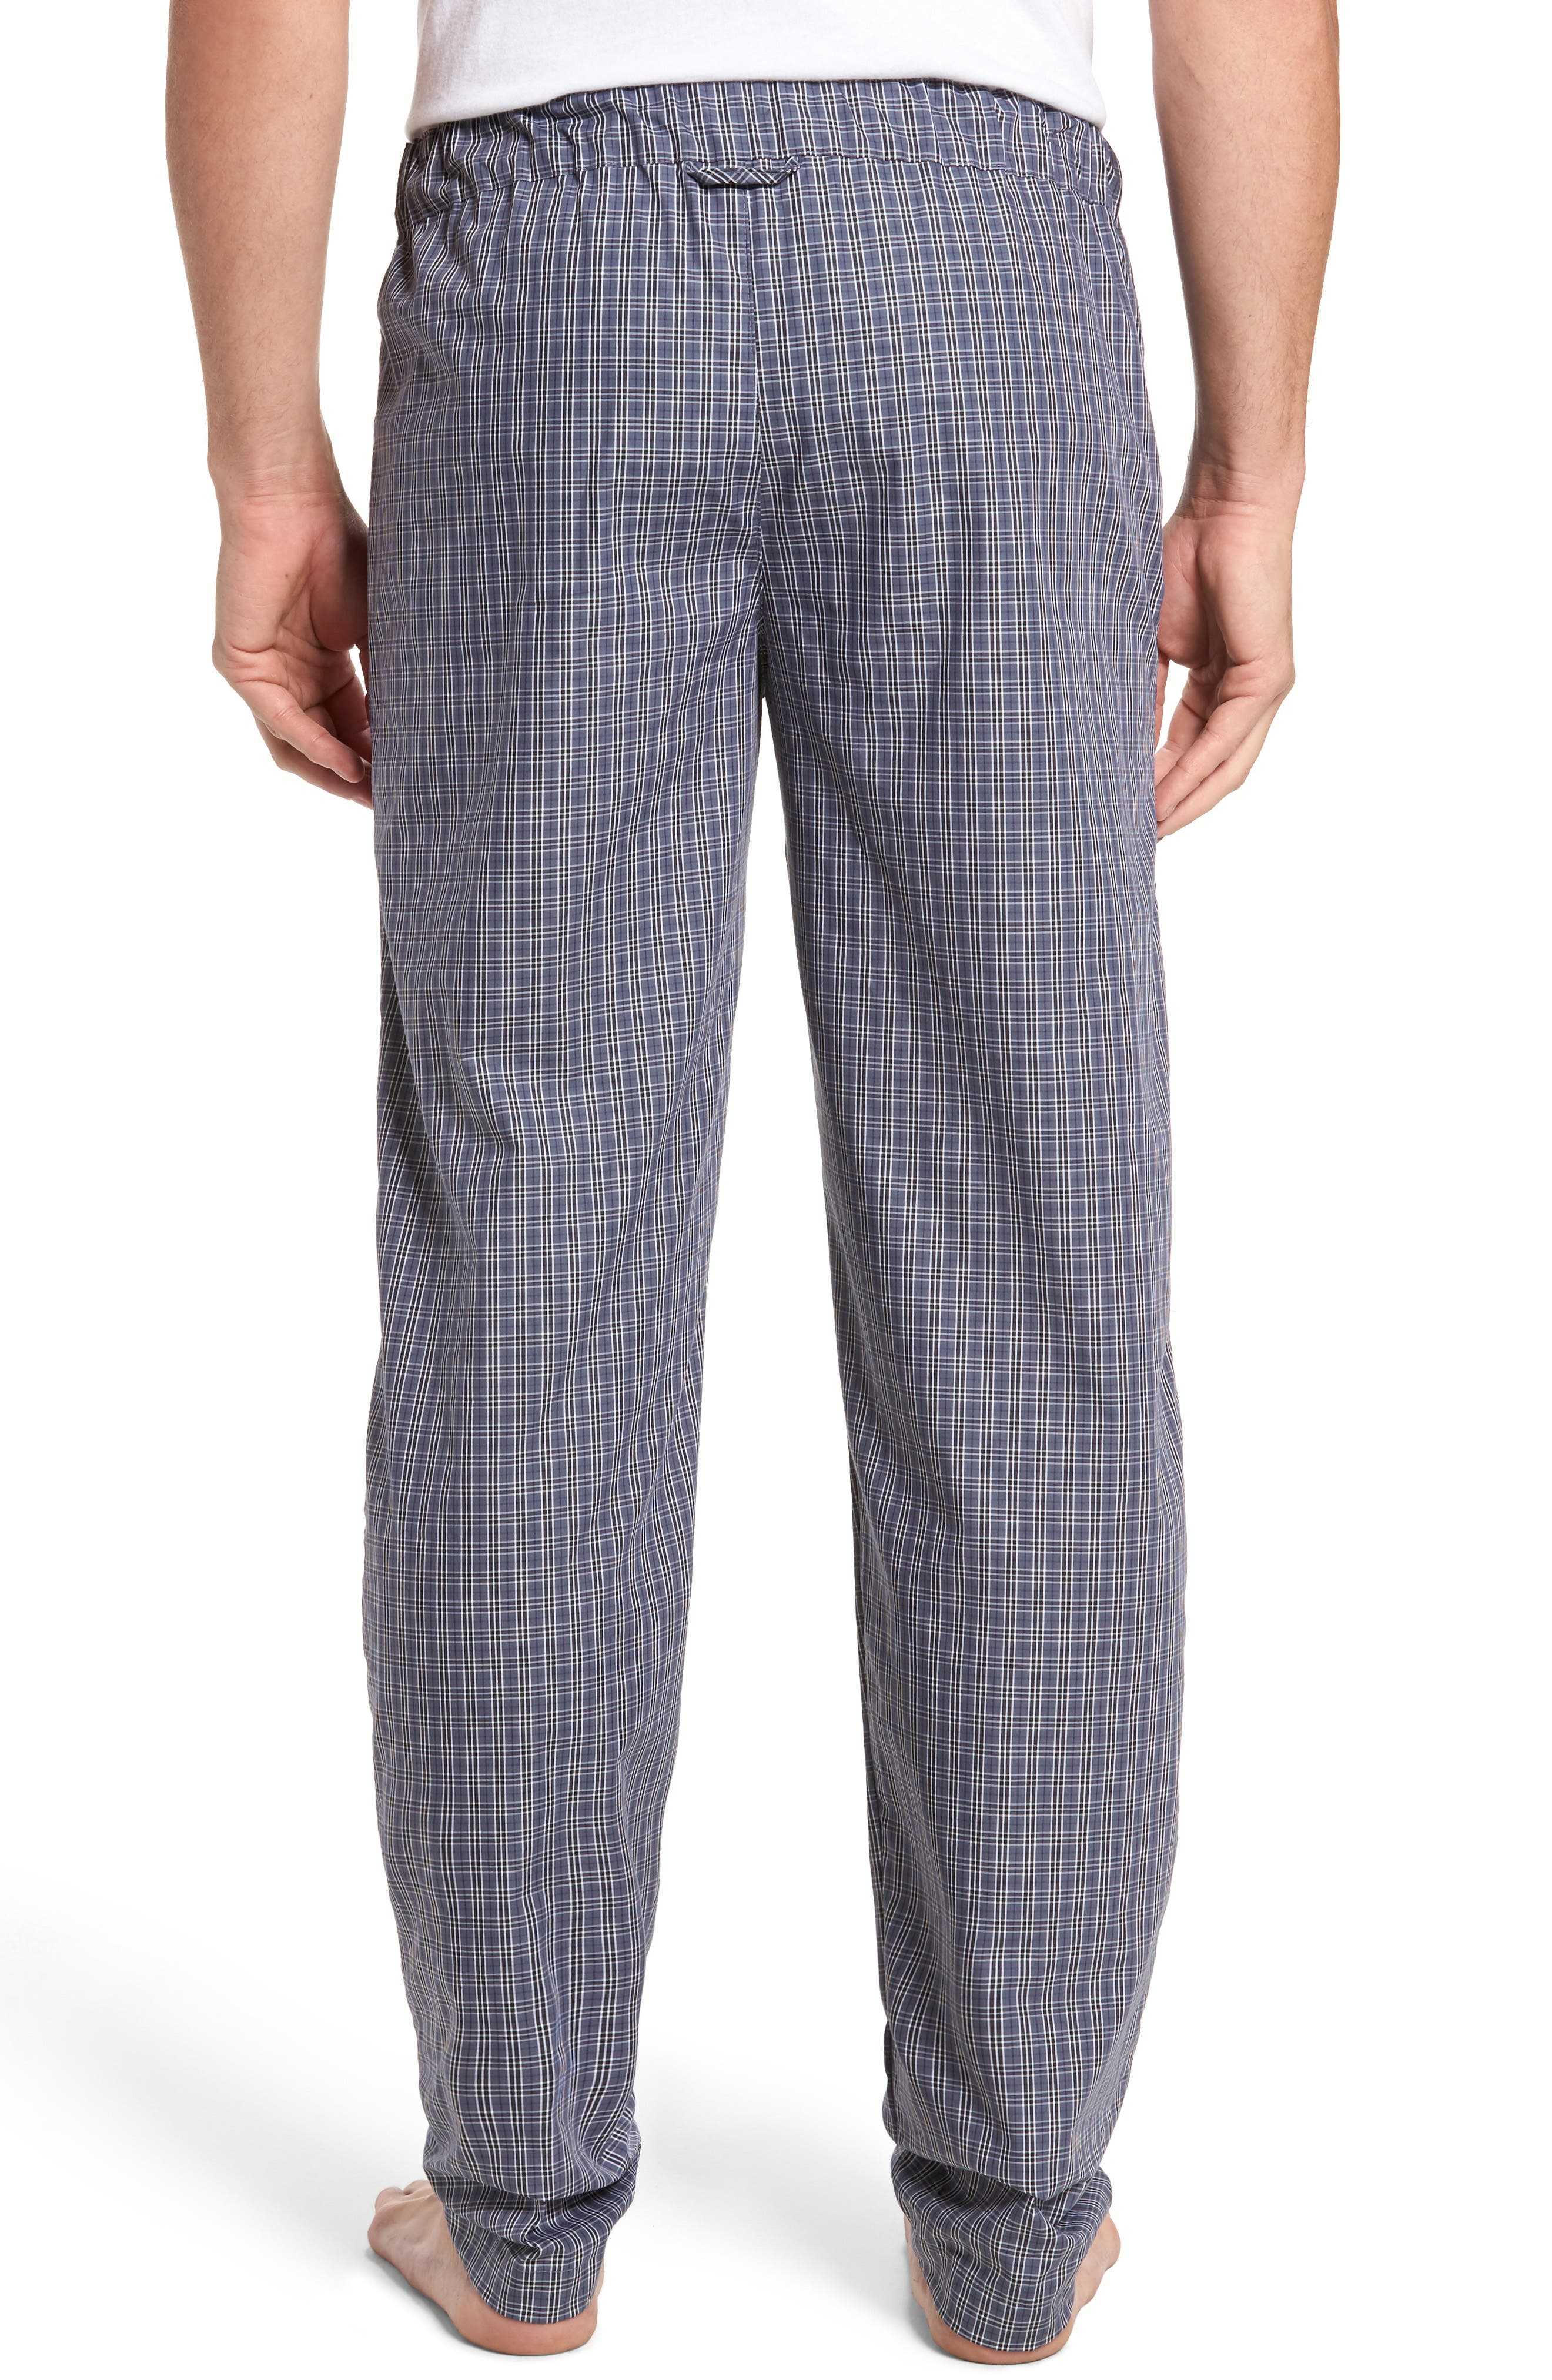 Night & Day Woven Lounge Pants,                             Alternate thumbnail 2, color,                             GREY CHECK